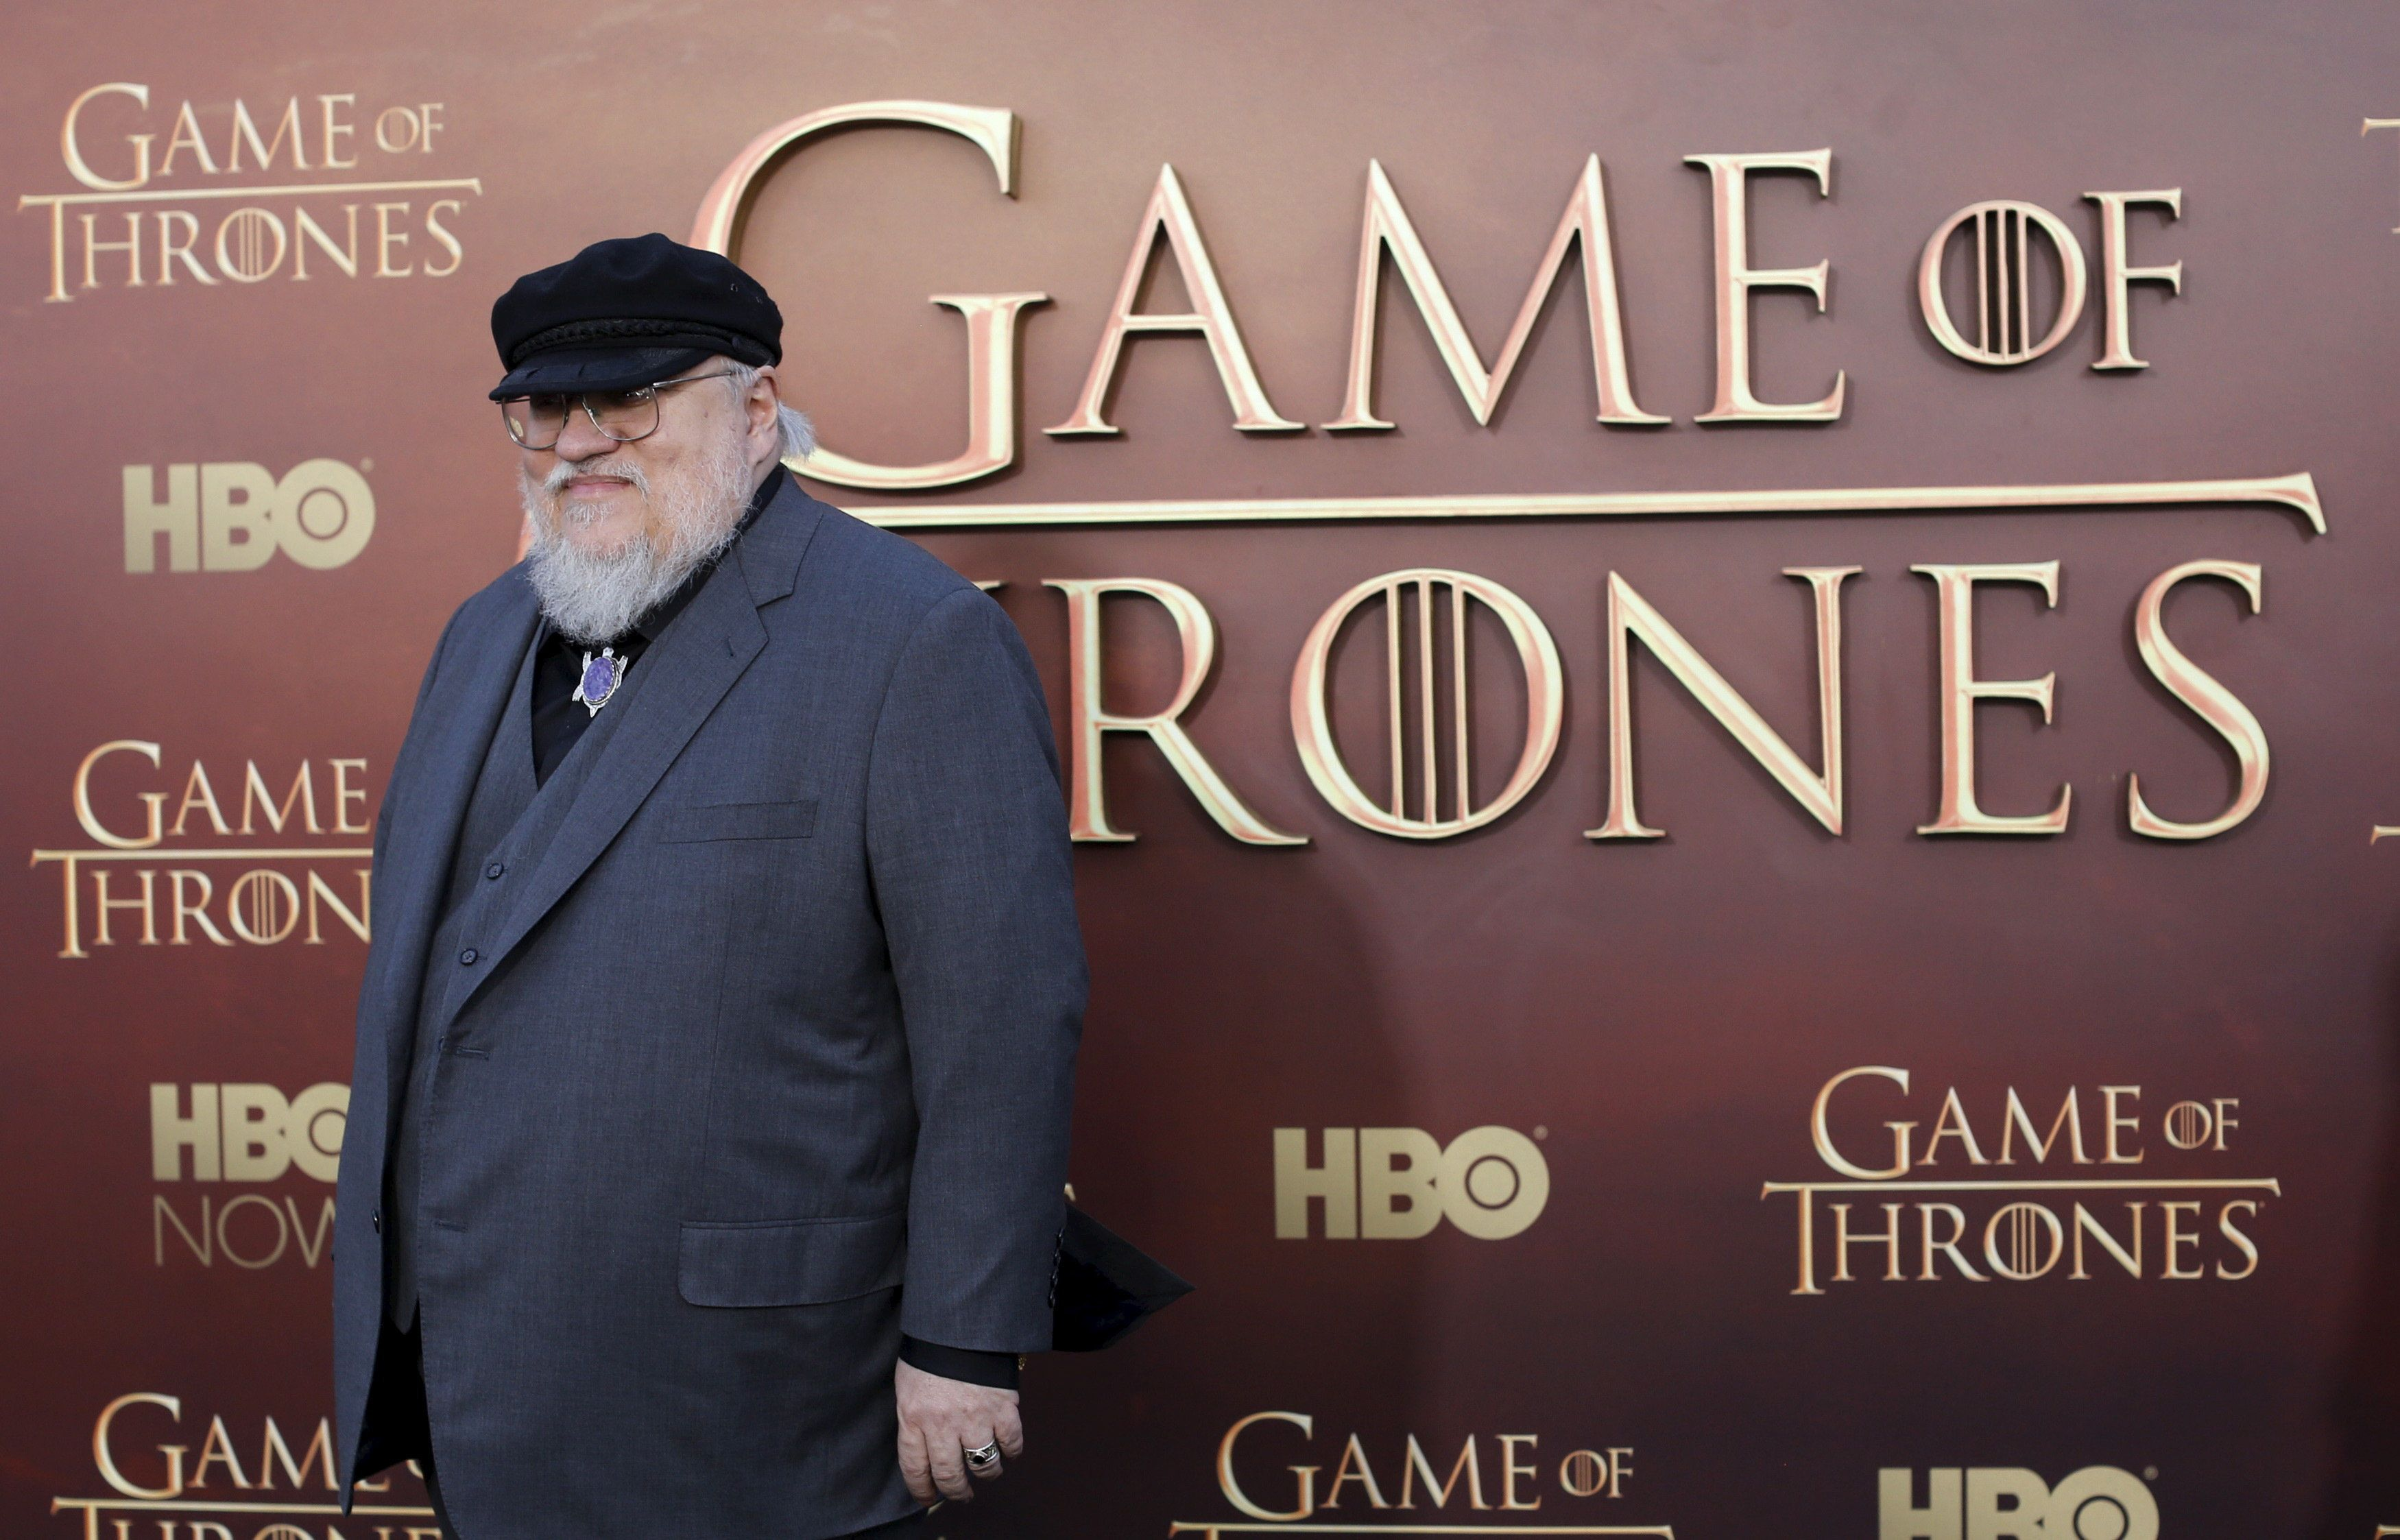 """Co-executive producer George R.R. Martin arrives for the season premiere of HBO's """"Game of Thrones"""" in San Francisco, California March 23, 2015. REUTERS/Robert Galbraith/File Photo"""